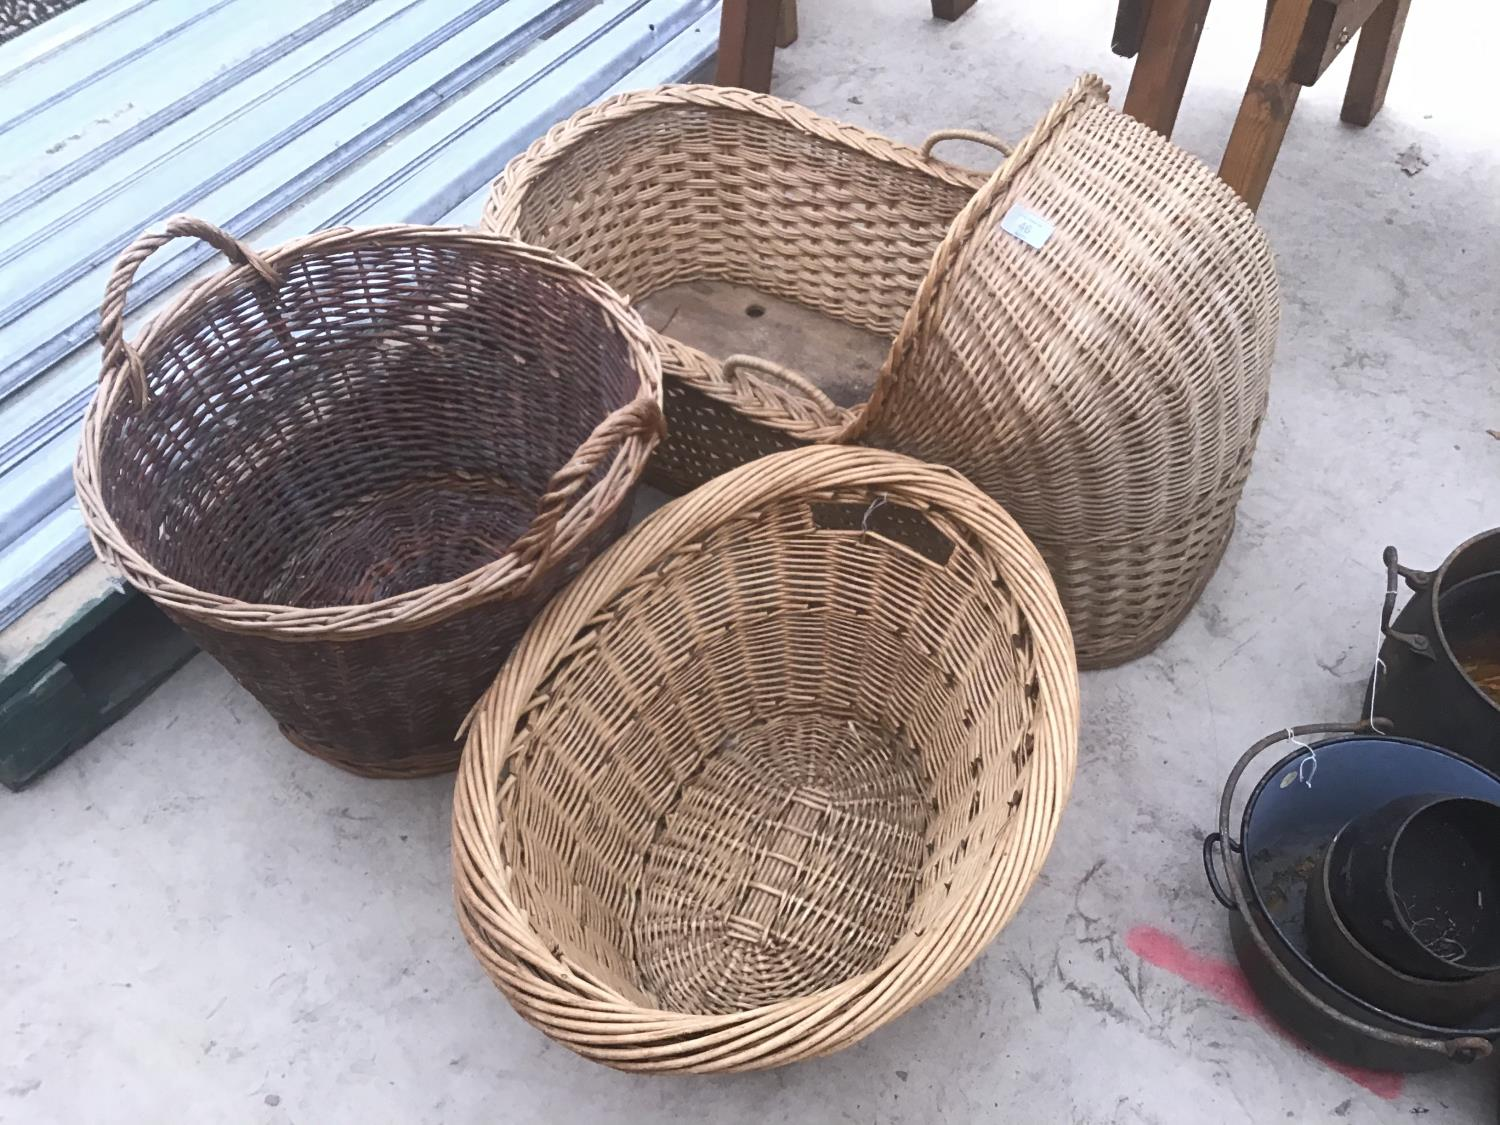 THREE WICKER ITEMS TO INCLUDE A MOSES BASKET AND TWO LOG BASKETS